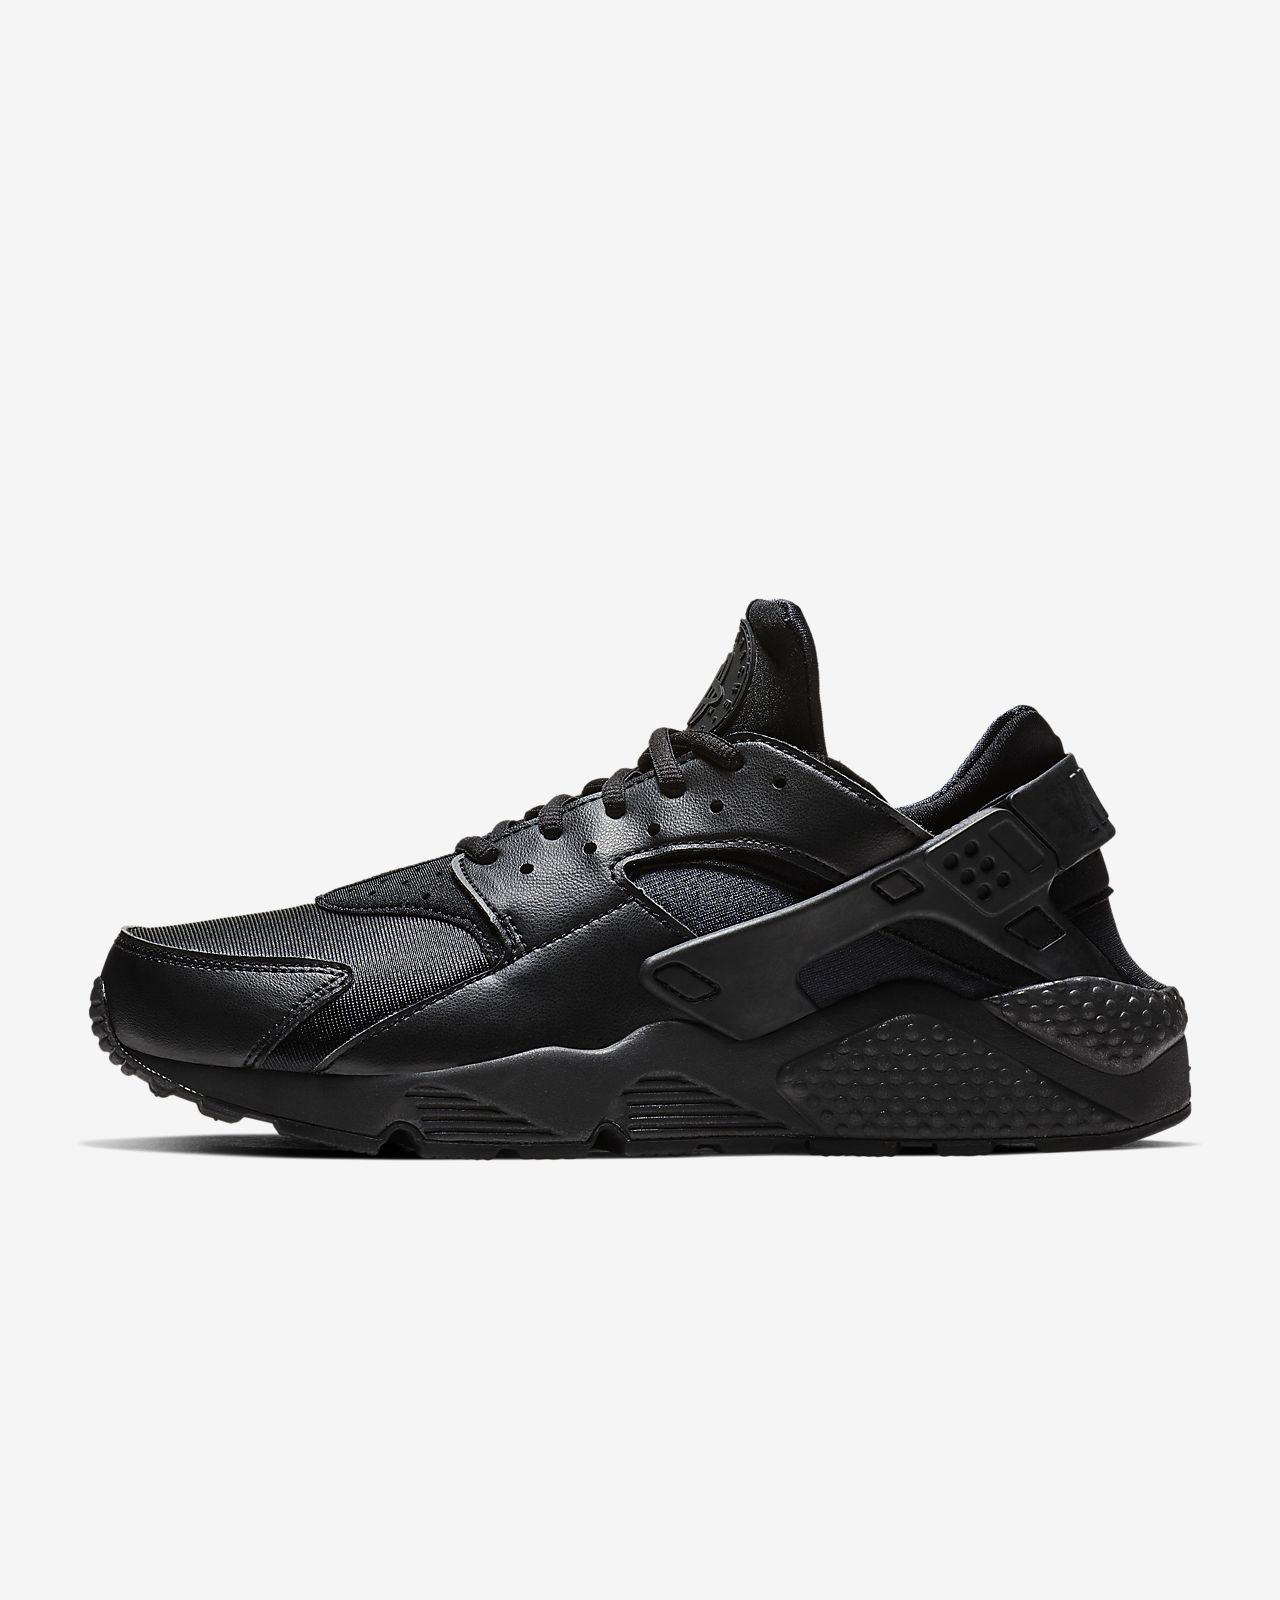 reputable site 78fe0 36847 Women s Shoe. Nike Air Huarache